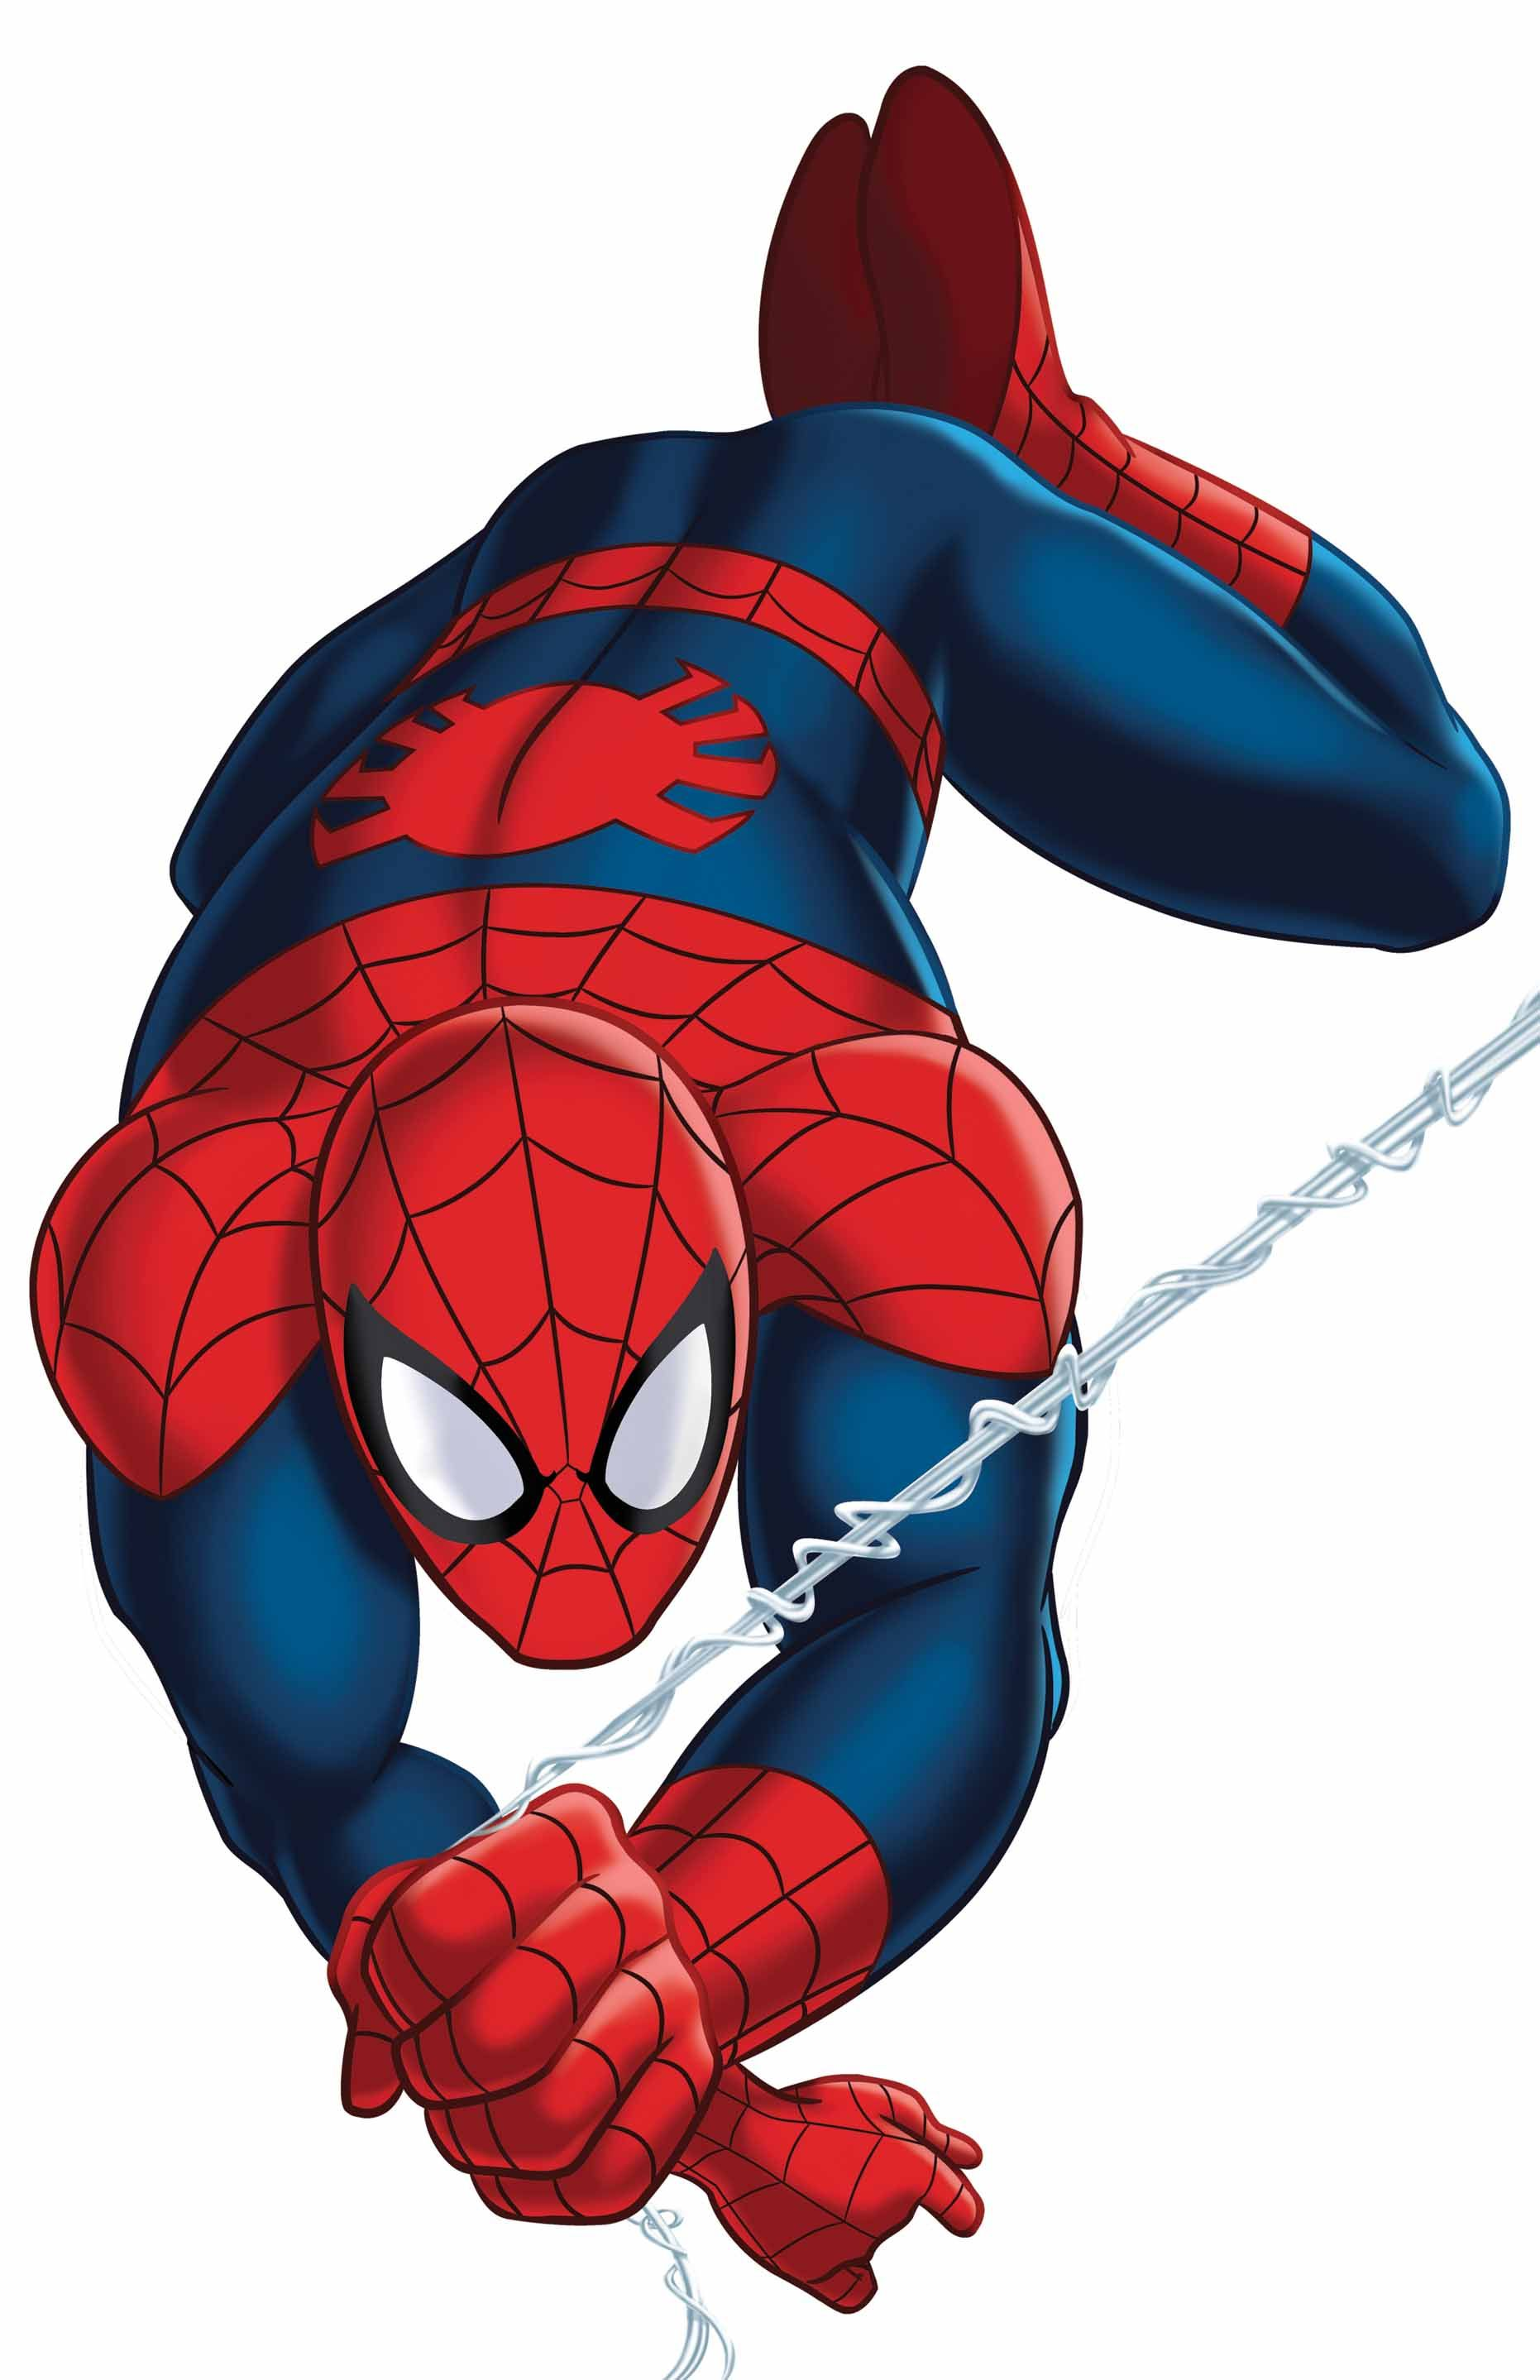 Ultimate spiderman  fiesta de super eroes  Pinterest  Spiderman